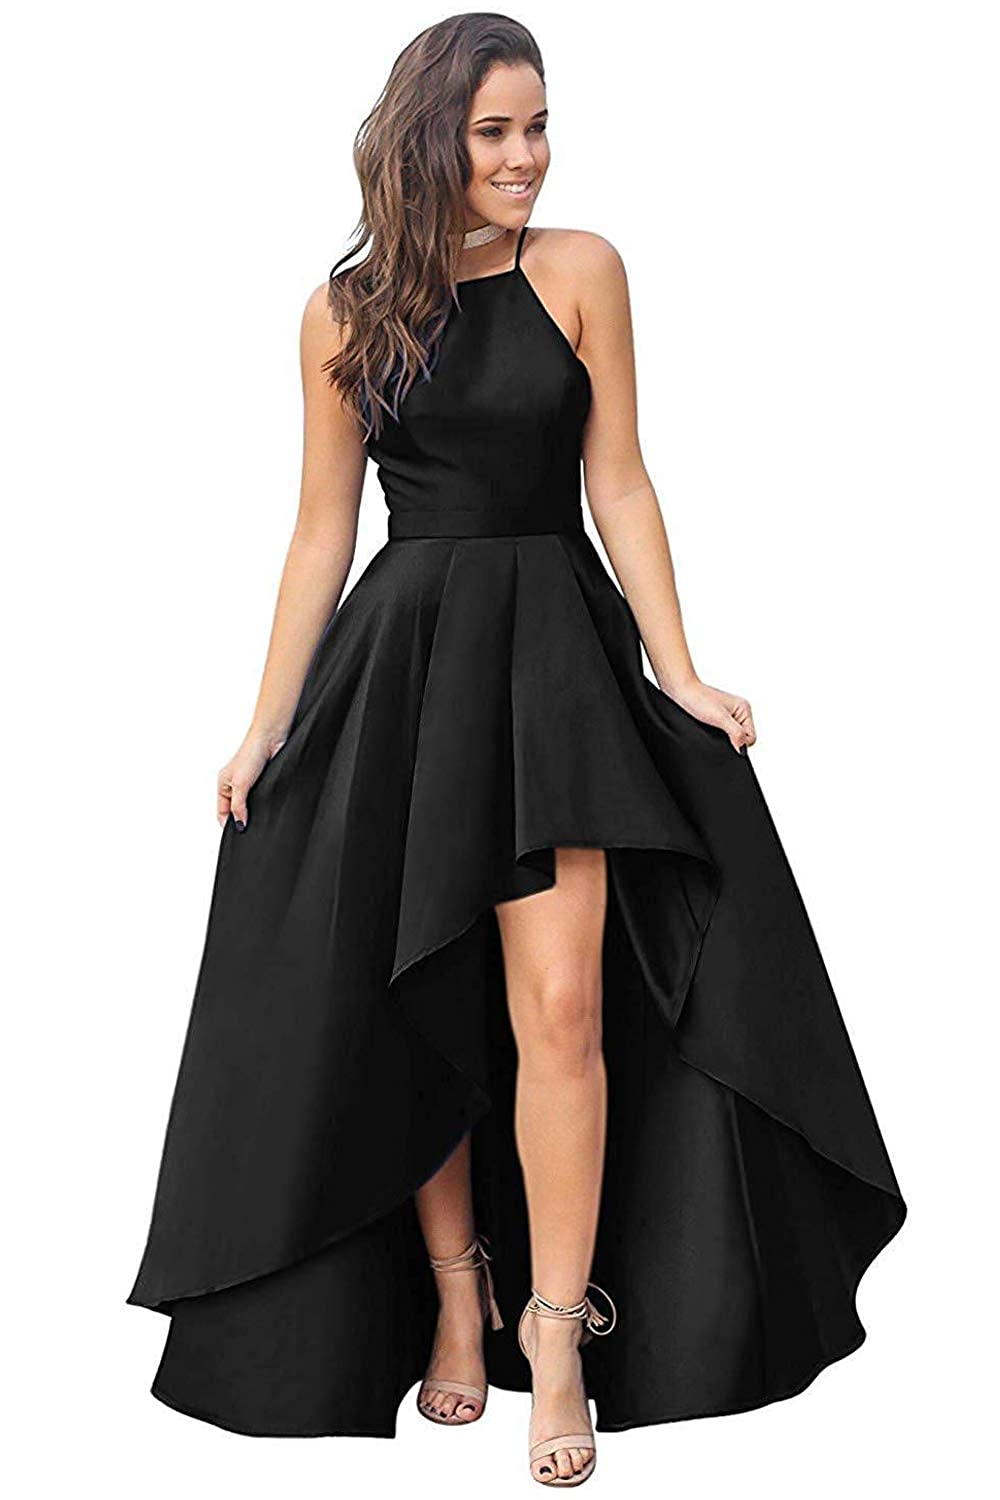 Black RTTUTED High Low Sleeveless Prom Dresses Satin Ball Gowns for Women Formal Evening Skirt